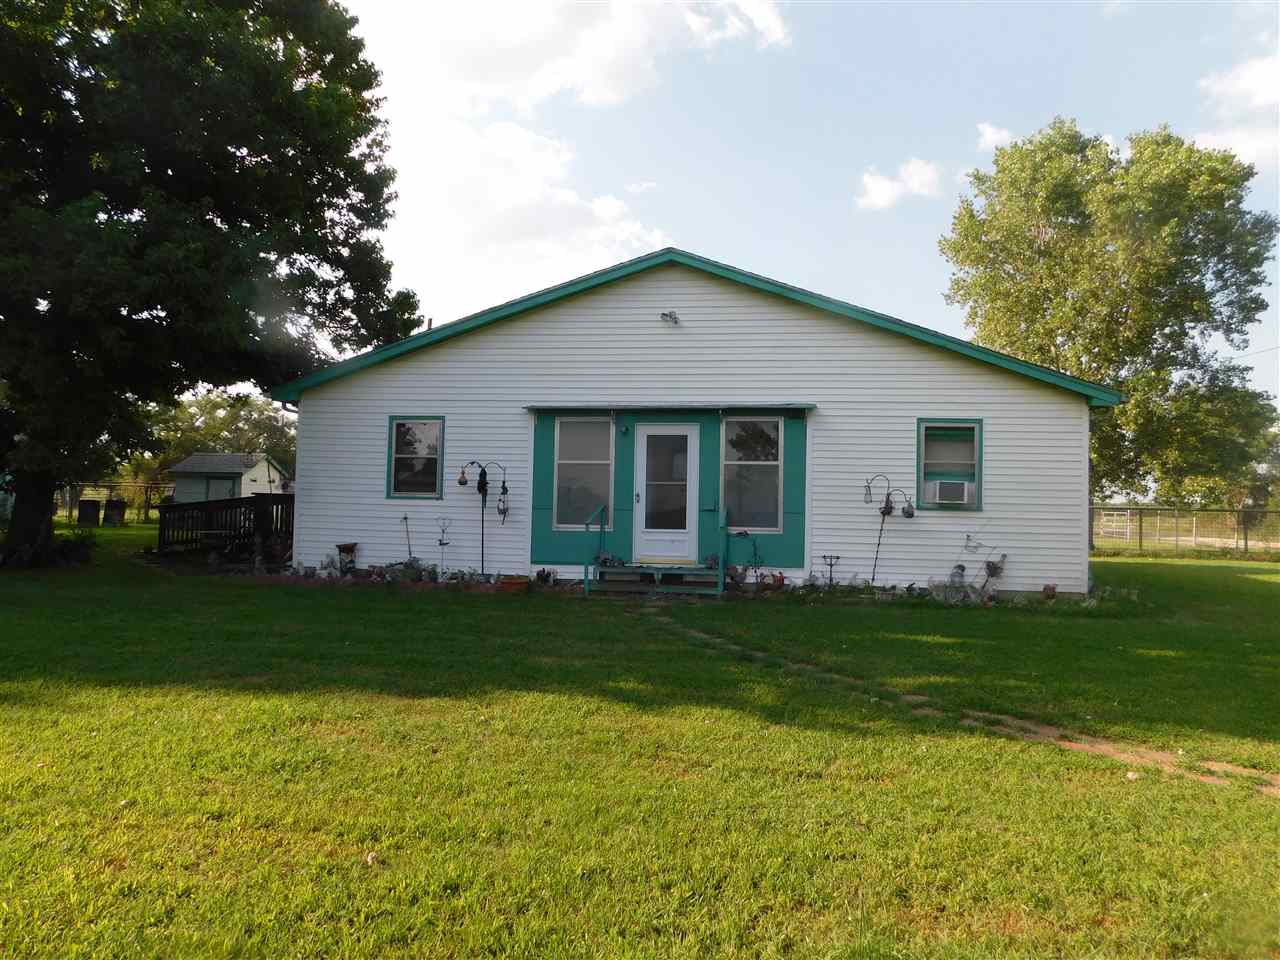 Just 1/2 mile east of the Kansas Turnpike entrance on 21st St, this property has alot to offer.  There are 2 homes, one built in 1930; the other built in 1996.  The MLS info is for the older home.  We have not had access to the newer one, but County records show it to consist of 1344 sq ft with 5 rooms (2 bedrooms) and a full basement  There is a one-car attached garage.  The land consists of rolling pasture land with a small pond and hedgerows.  There is almost 1/4 mile of blacktop frontage along the north side and gravel road on the east.